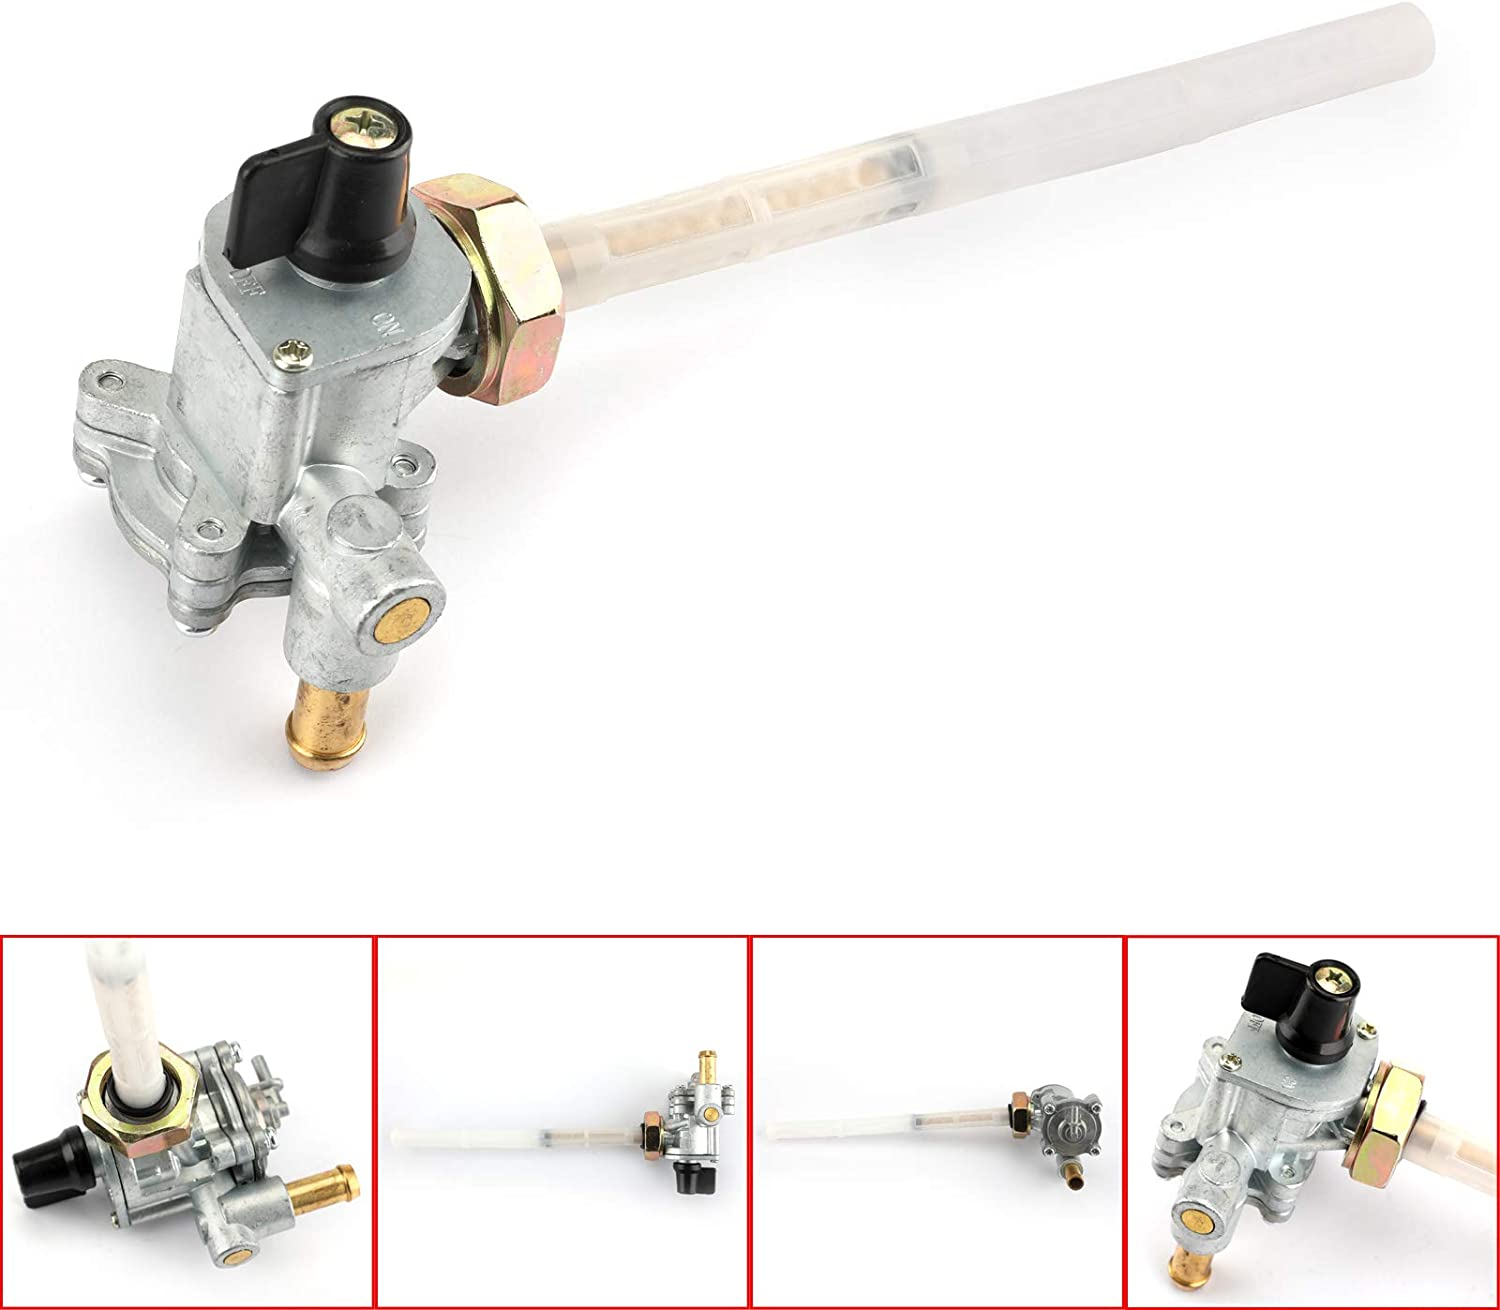 Amhousejoy Fuel Petcock Valve Switch for Honda Shadow Aero Spirit VT750C VT750C2 VT750CA